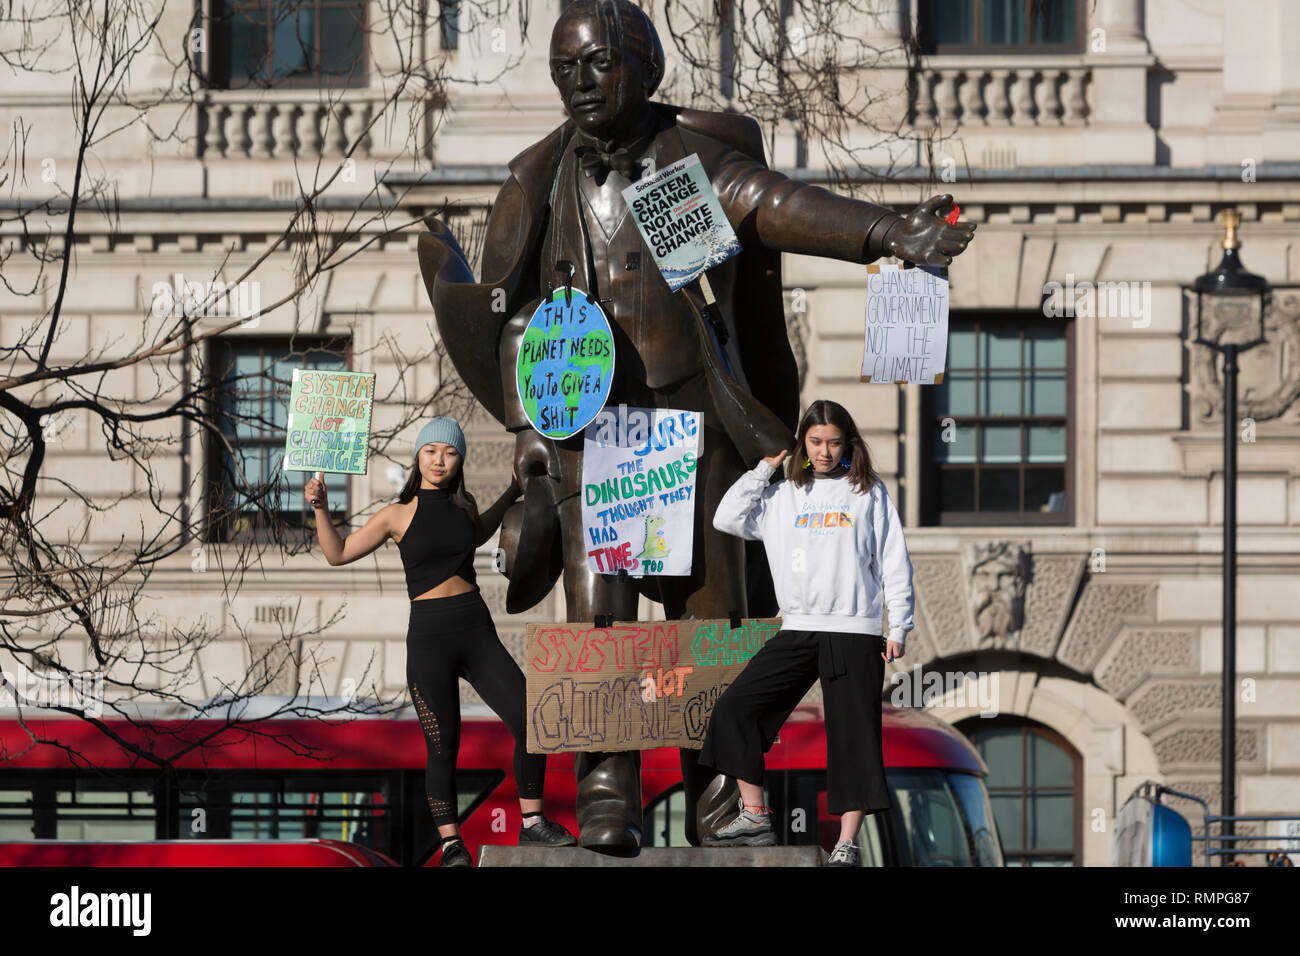 London, UK. 15th Feb, 2019.  Inspired by Swedish teenager Greta Thunberg and organised by Youth Strike 4 Climate, British eco-aware school and college-age pupils protest about Climate Change stand on the statue of Winston Churchill in Parliament Square during their walkout from classes, on 15th February 2019, in Westminster, London England. Photo by Richard Baker / Alamy Live News Credit: RichardBaker/Alamy Live News Stock Photo